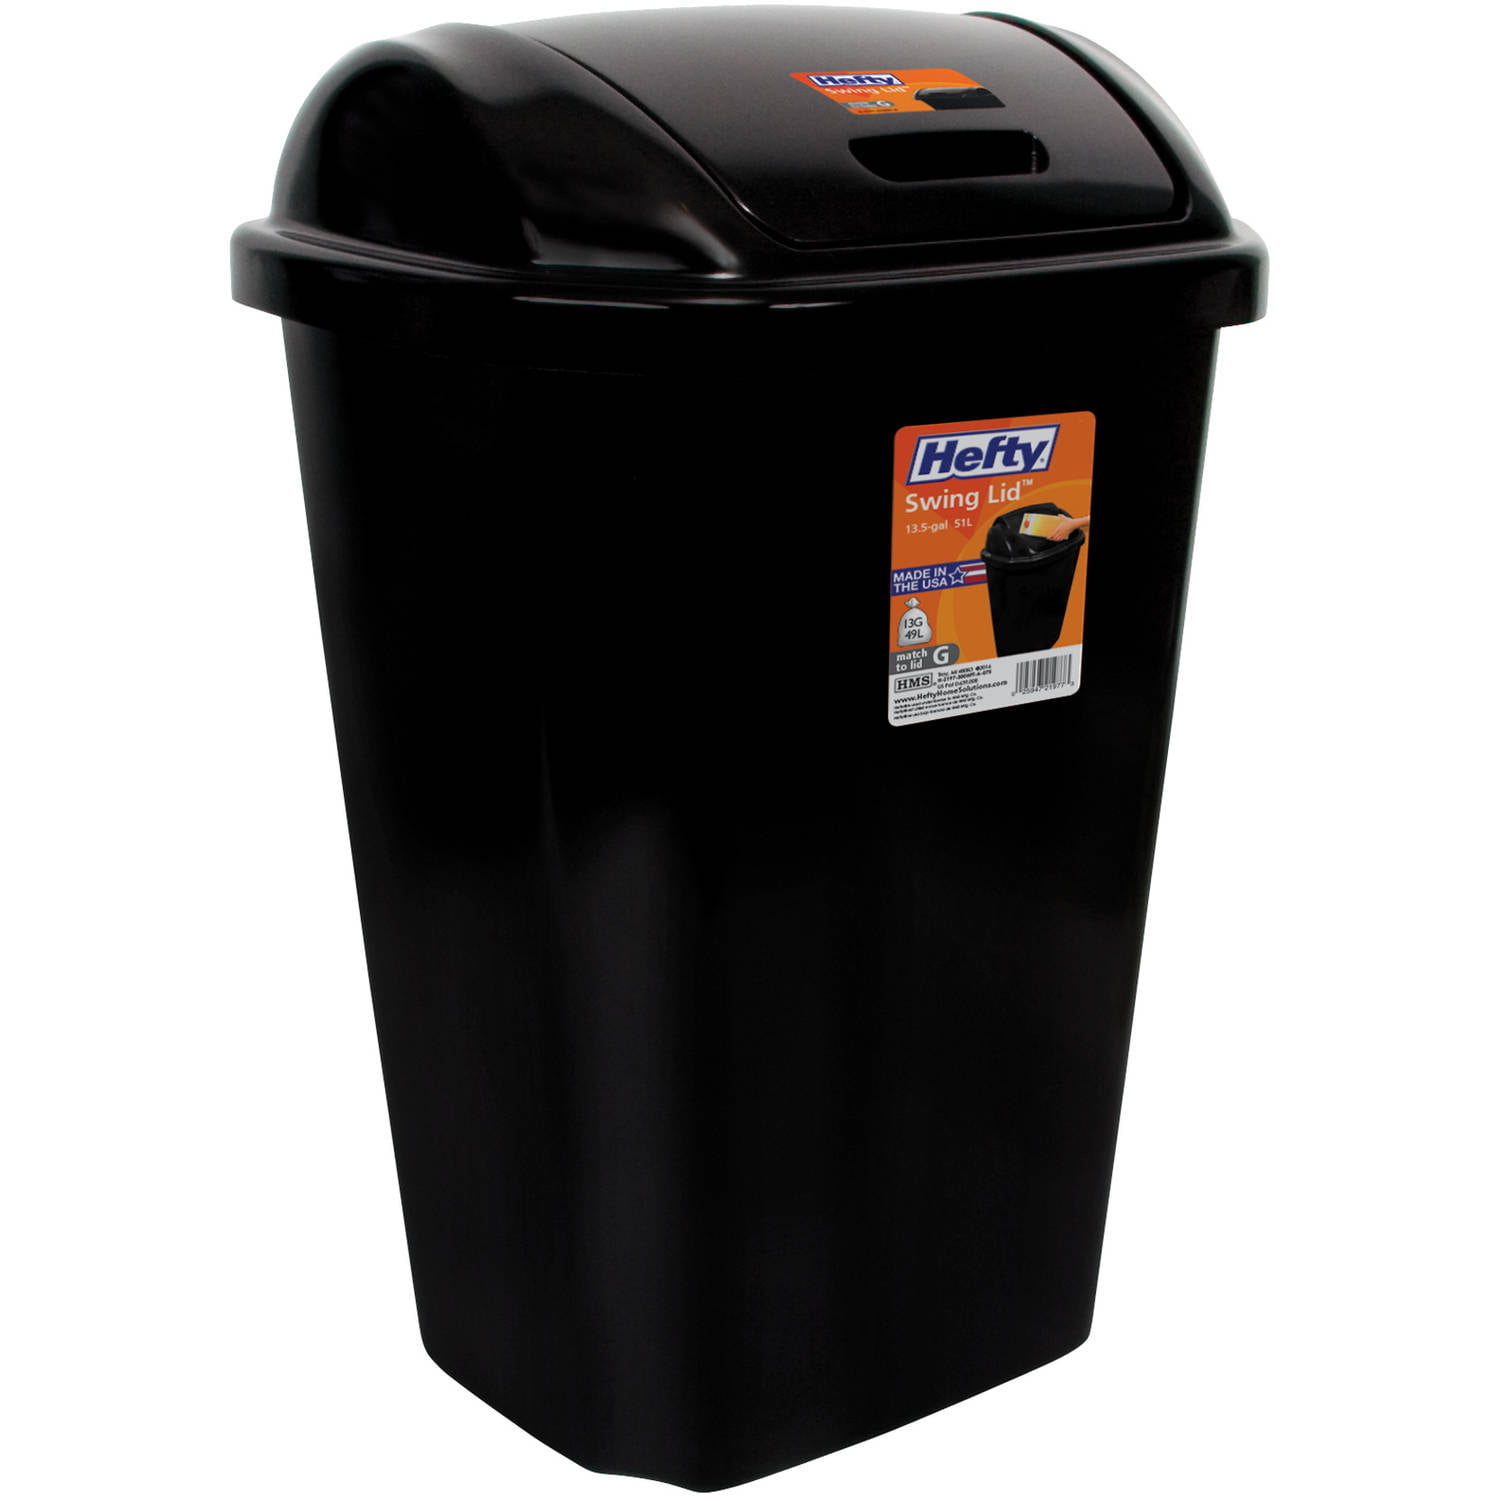 hefty swing lid 135 gallon trash can black walmartcom. Interior Design Ideas. Home Design Ideas